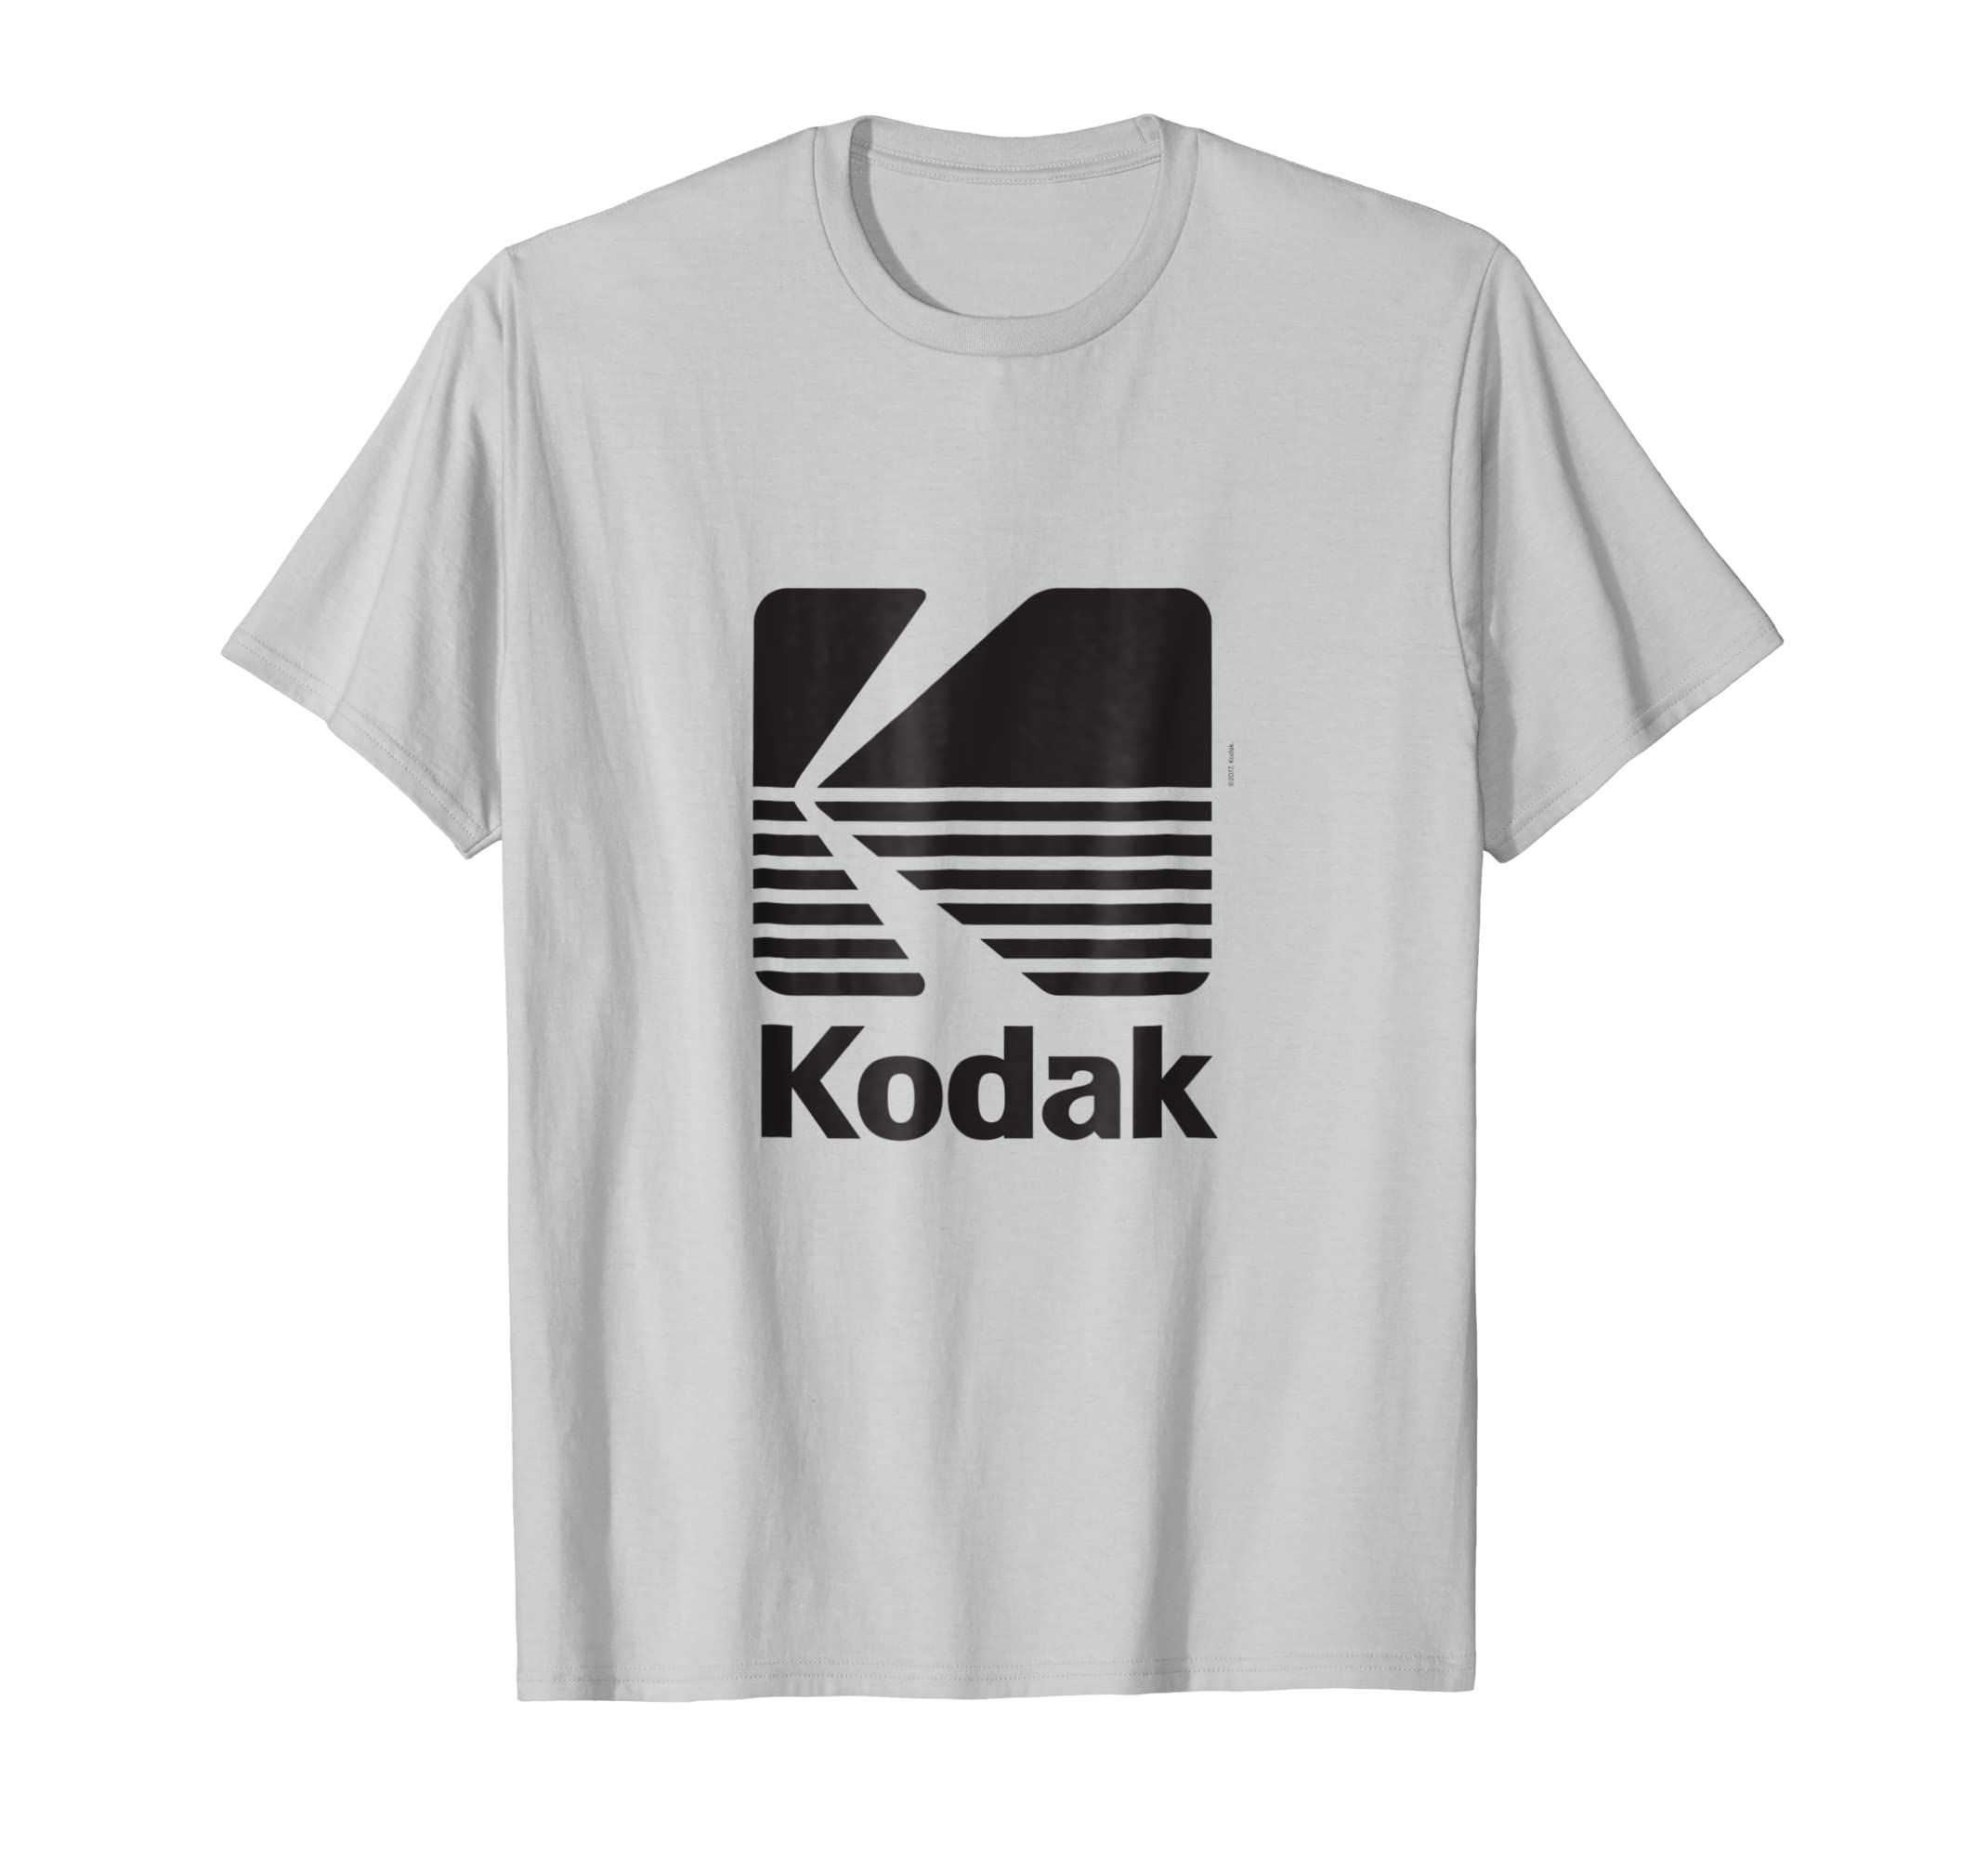 7bc21c1cd5e2b Amazon.com  80s Vintage KODAK Logo T-Shirt  Clothing